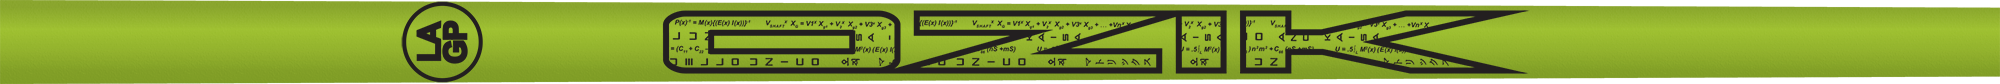 Ozik Red Tie: Lime Green Black Matte - Wood 60 R